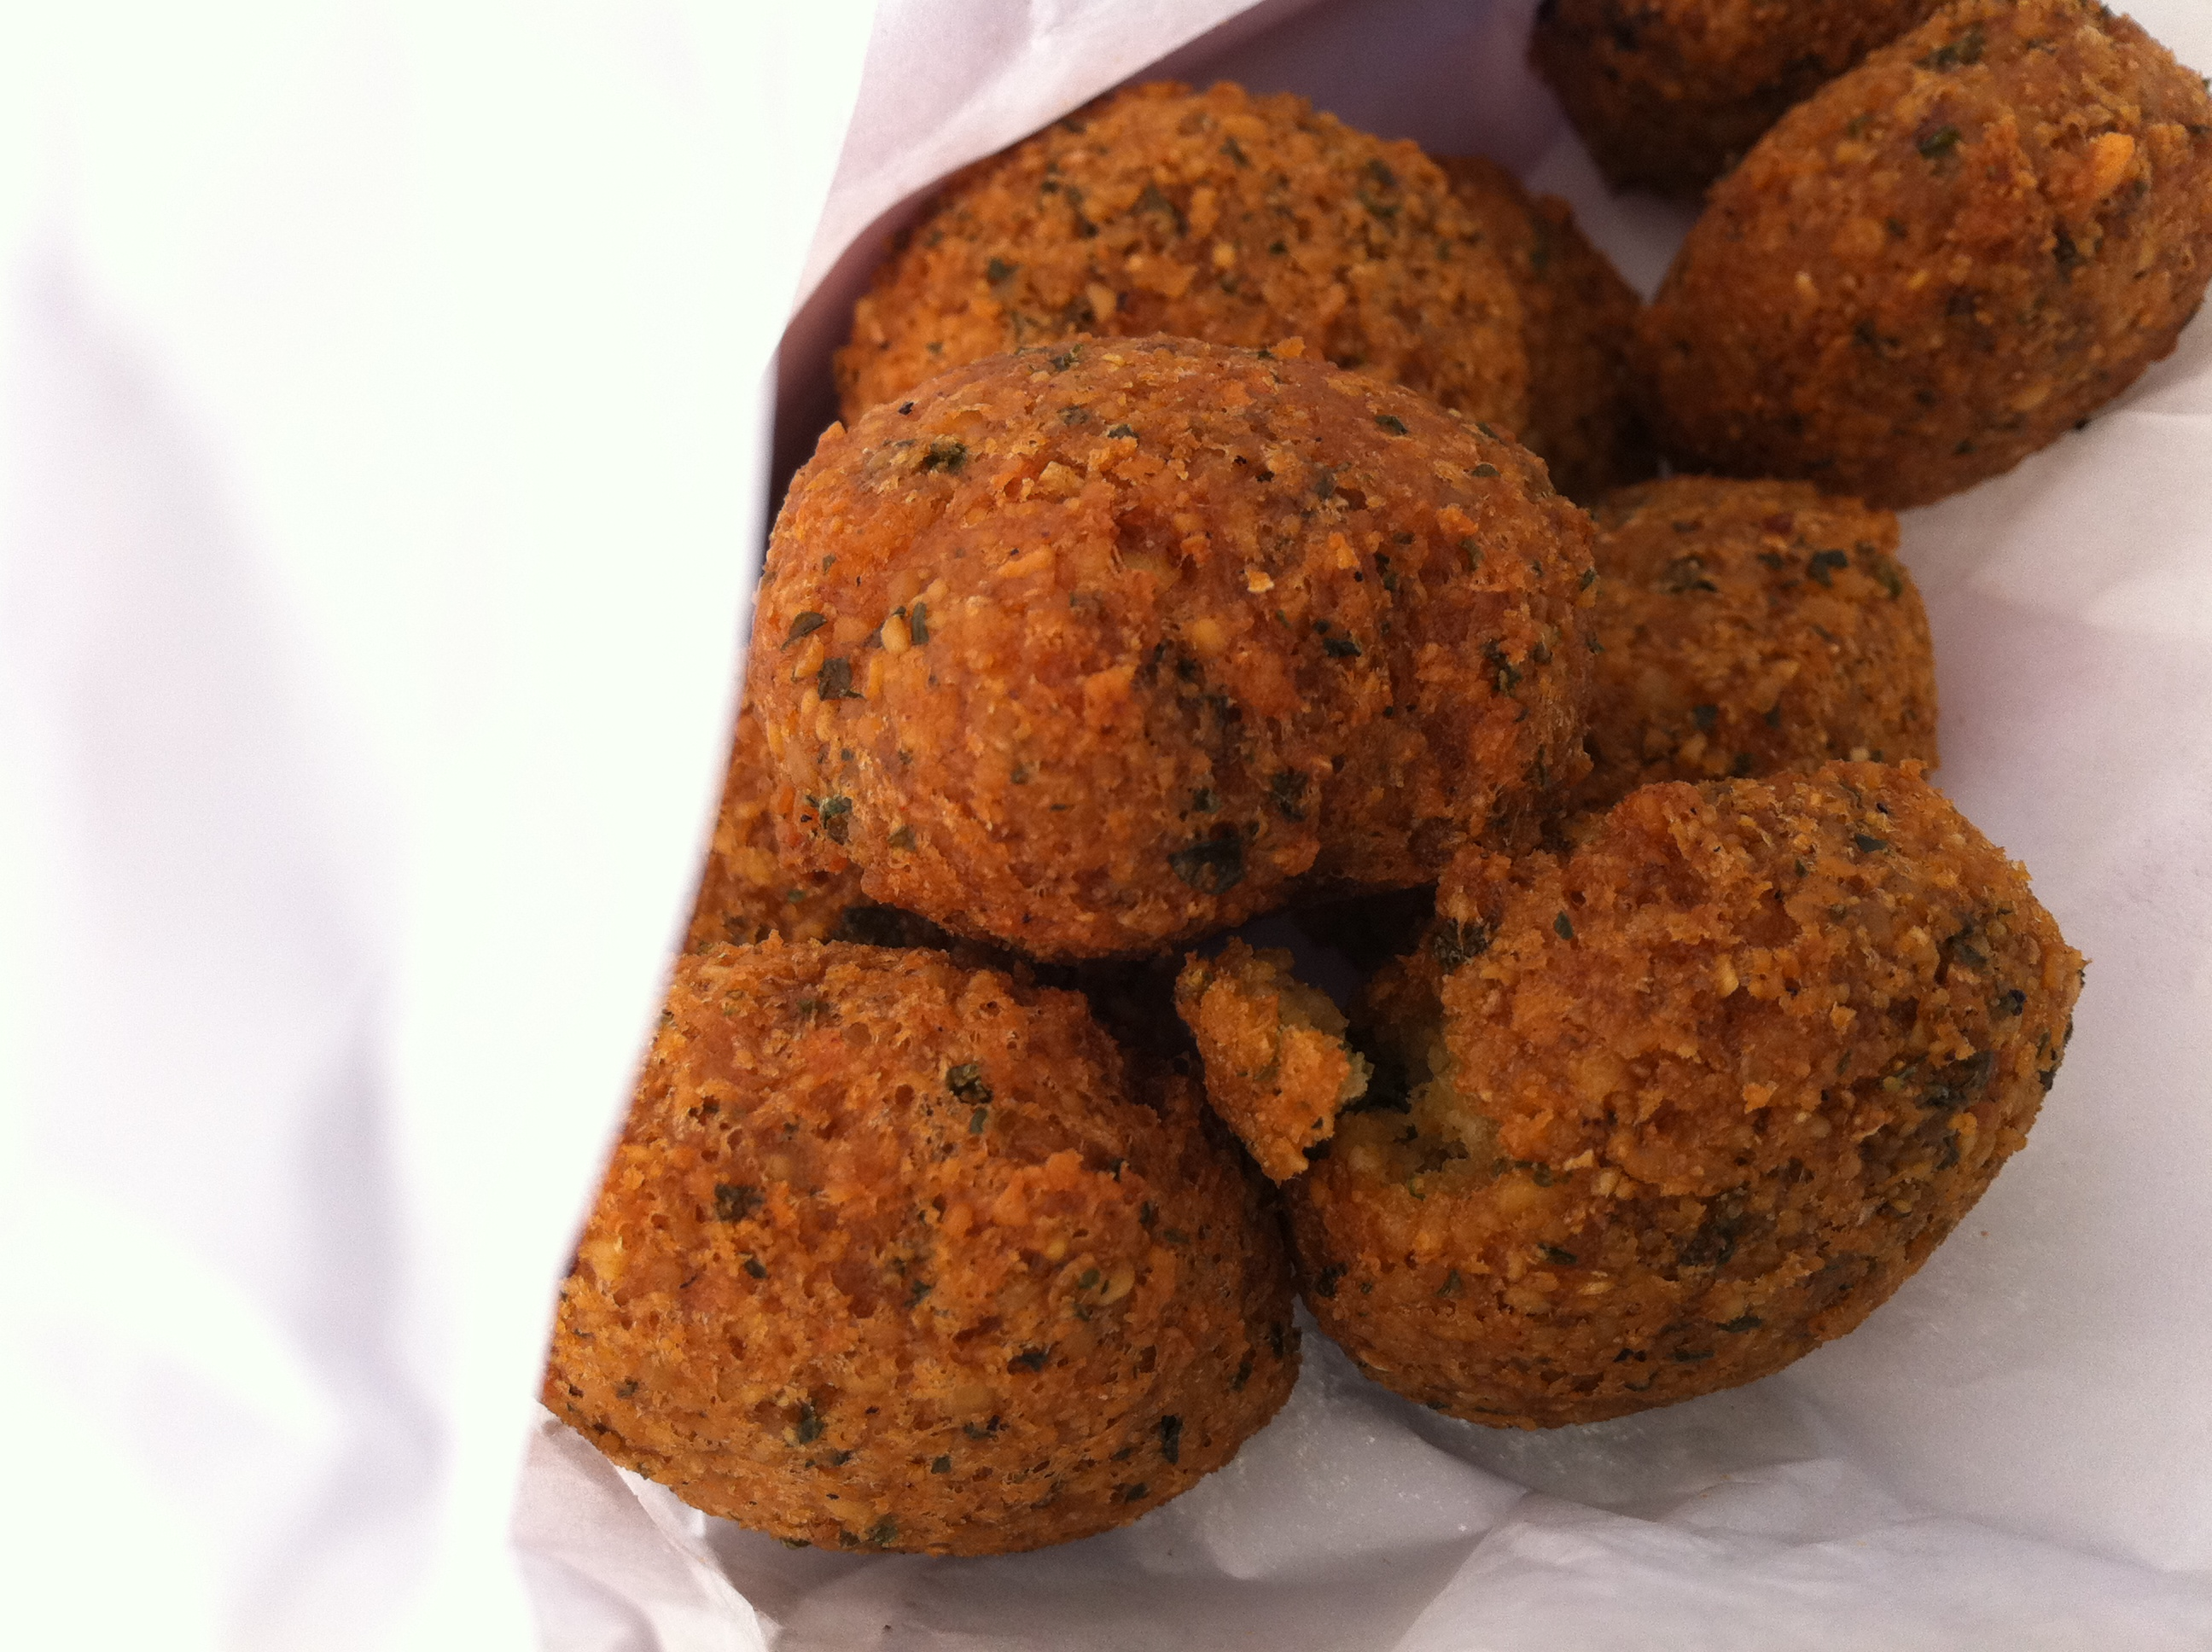 Mr Falafel_Falafel nuggets